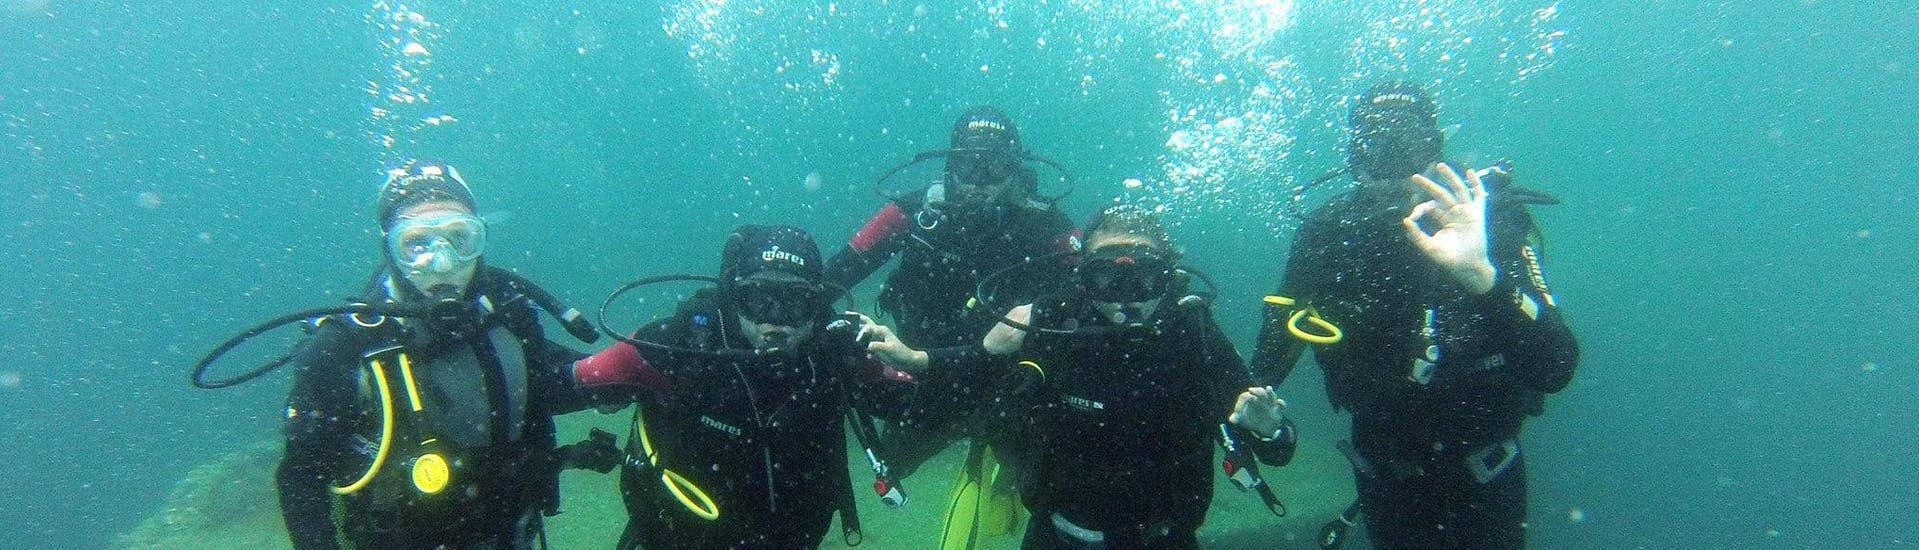 A group of friends are posing underwater during their PE12 & SSI/PADI Scuba Diver Course for Beginner with Le Kalliste Plongée.